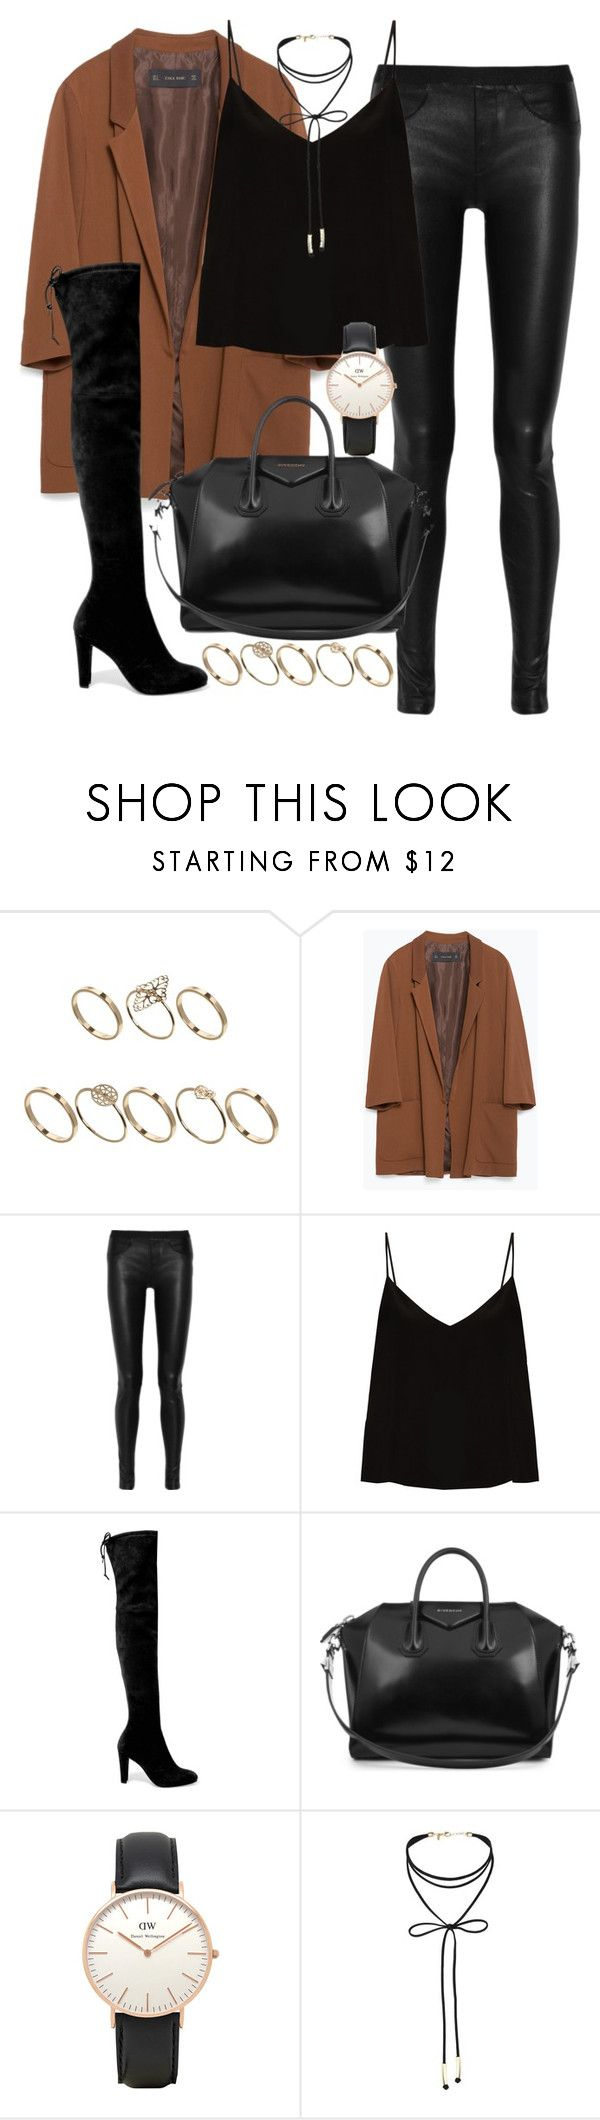 """""""Untitled #281"""" by dressyourbestie ❤ liked on Polyvore featuring ASOS, Zara, Helmut Lang, Raey, Stuart Weitzman, Givenchy, Topshop and Miss Selfridge"""